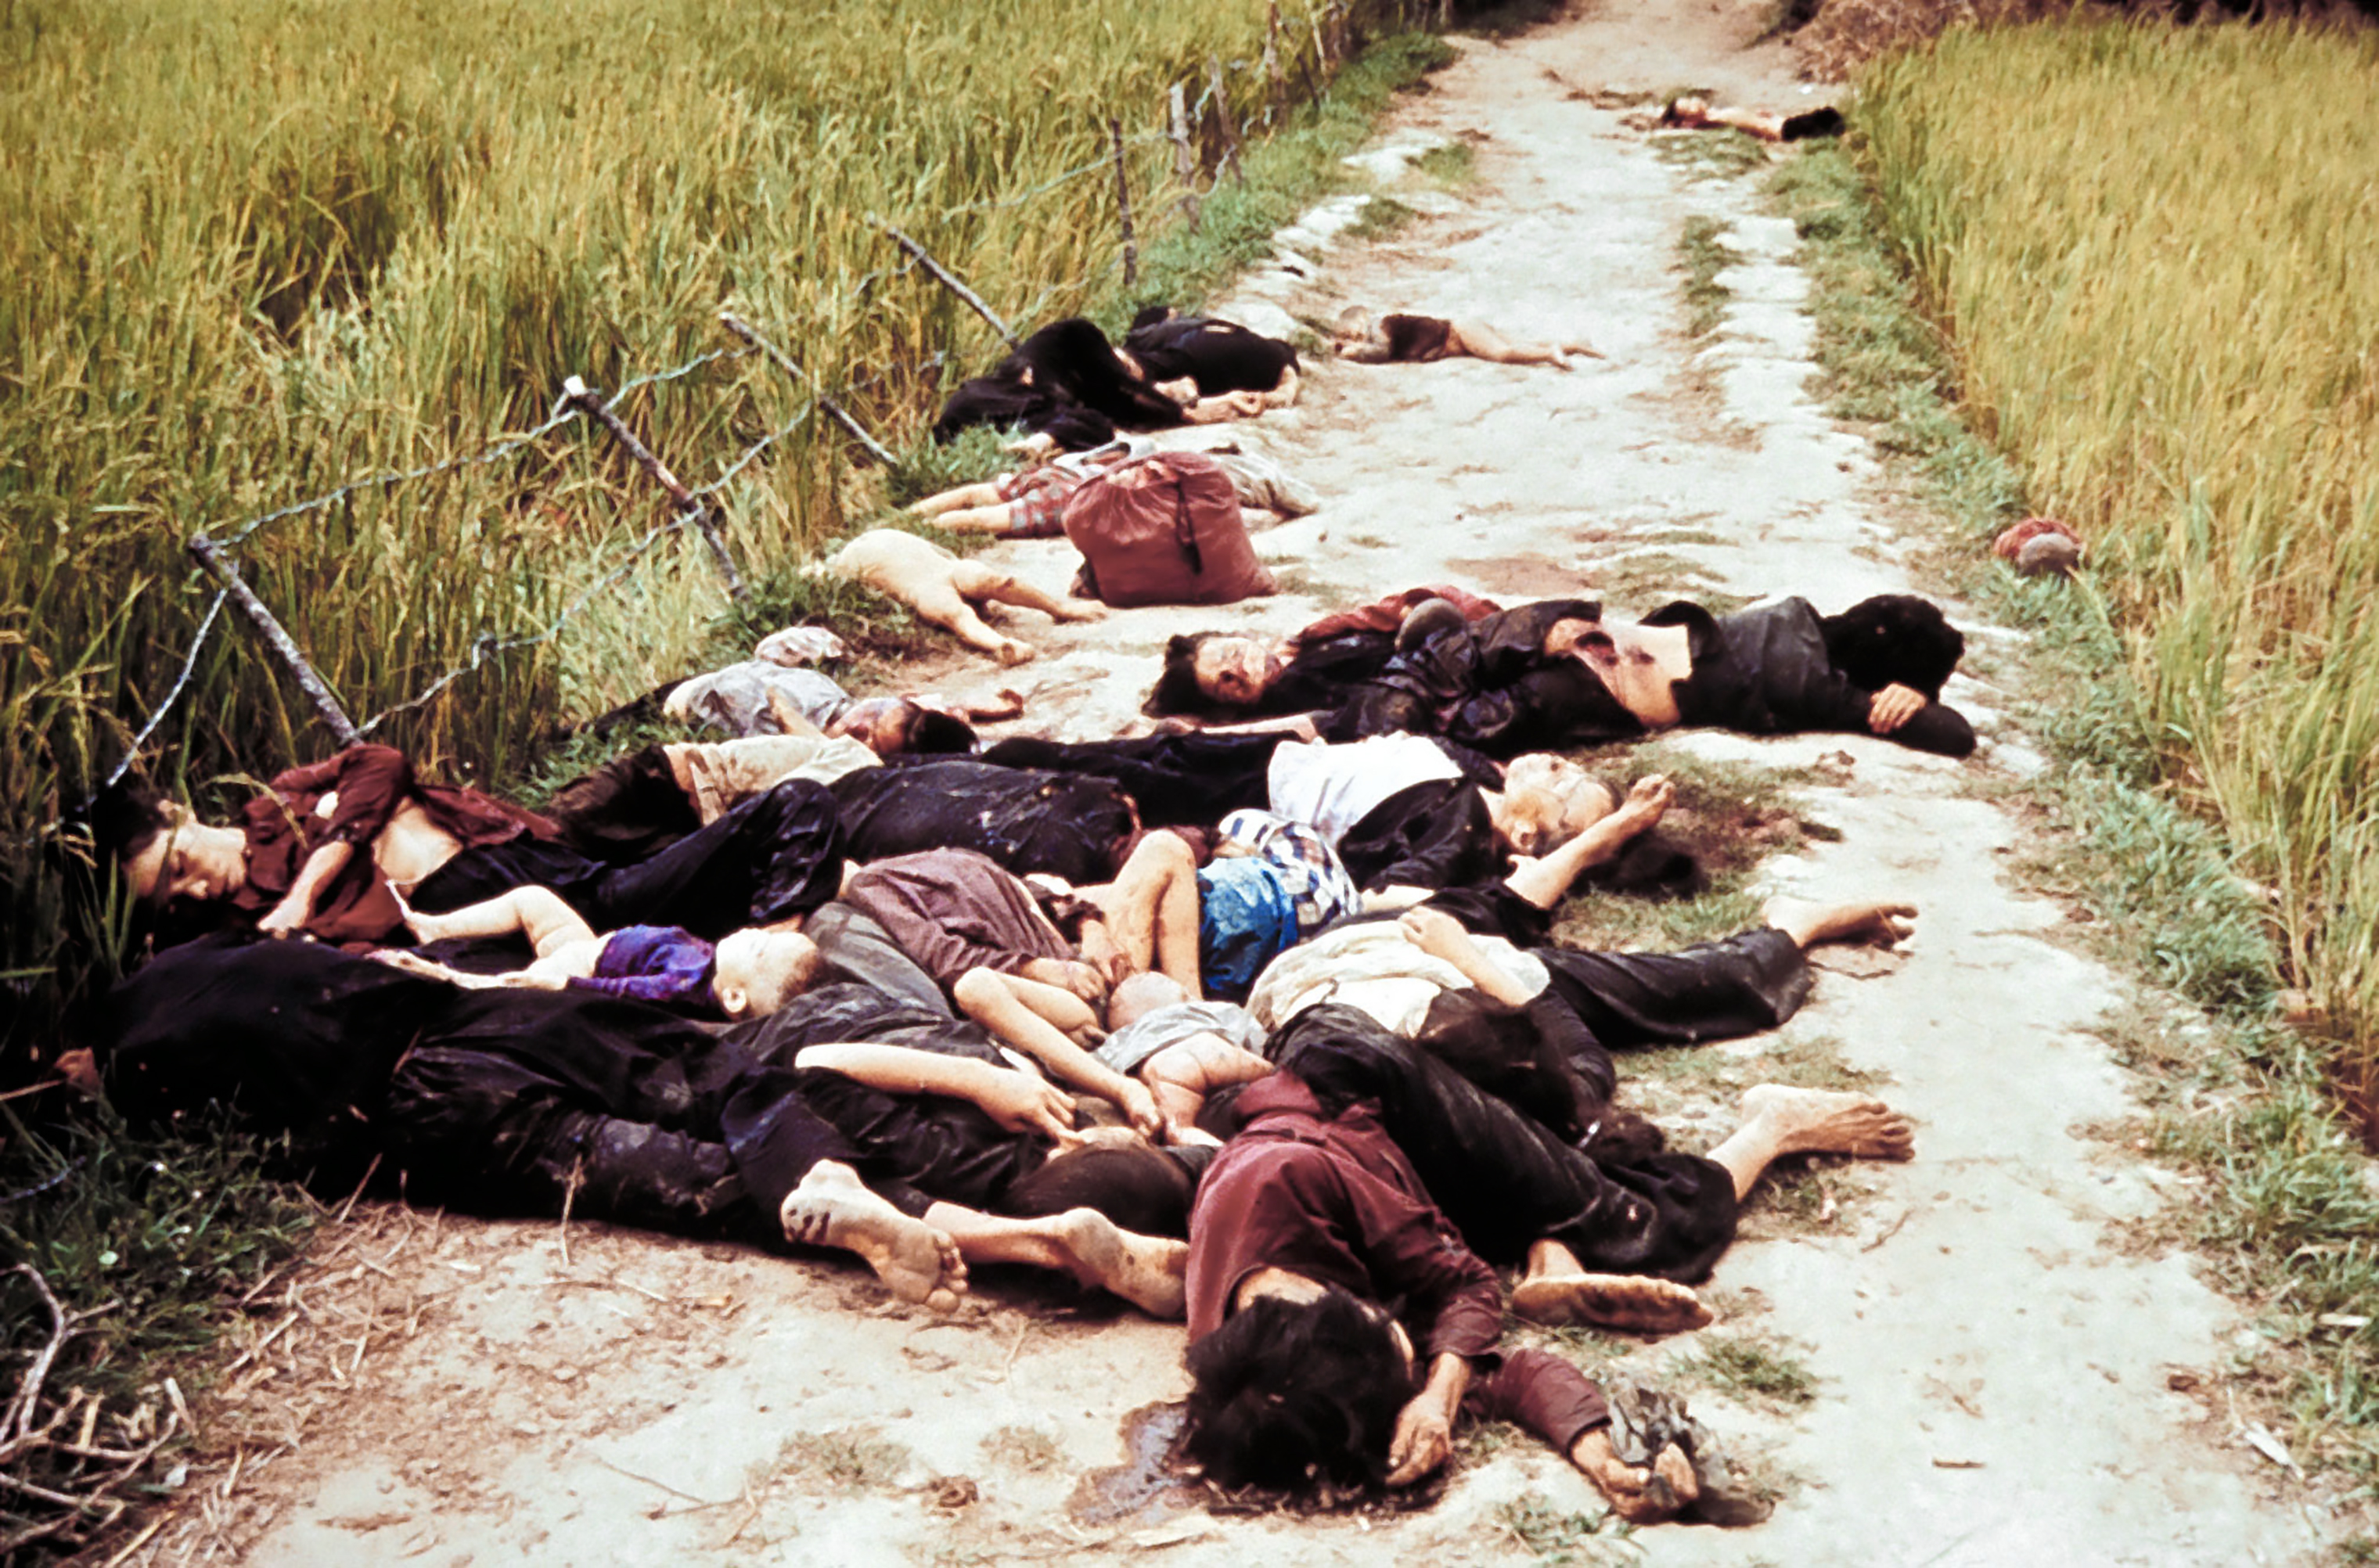 When this photo ran in LIFE, the caption noted that Haeberle  found the bodies above on a road leading from the village.  This image later appeared on the front page of the Plain Dealer.